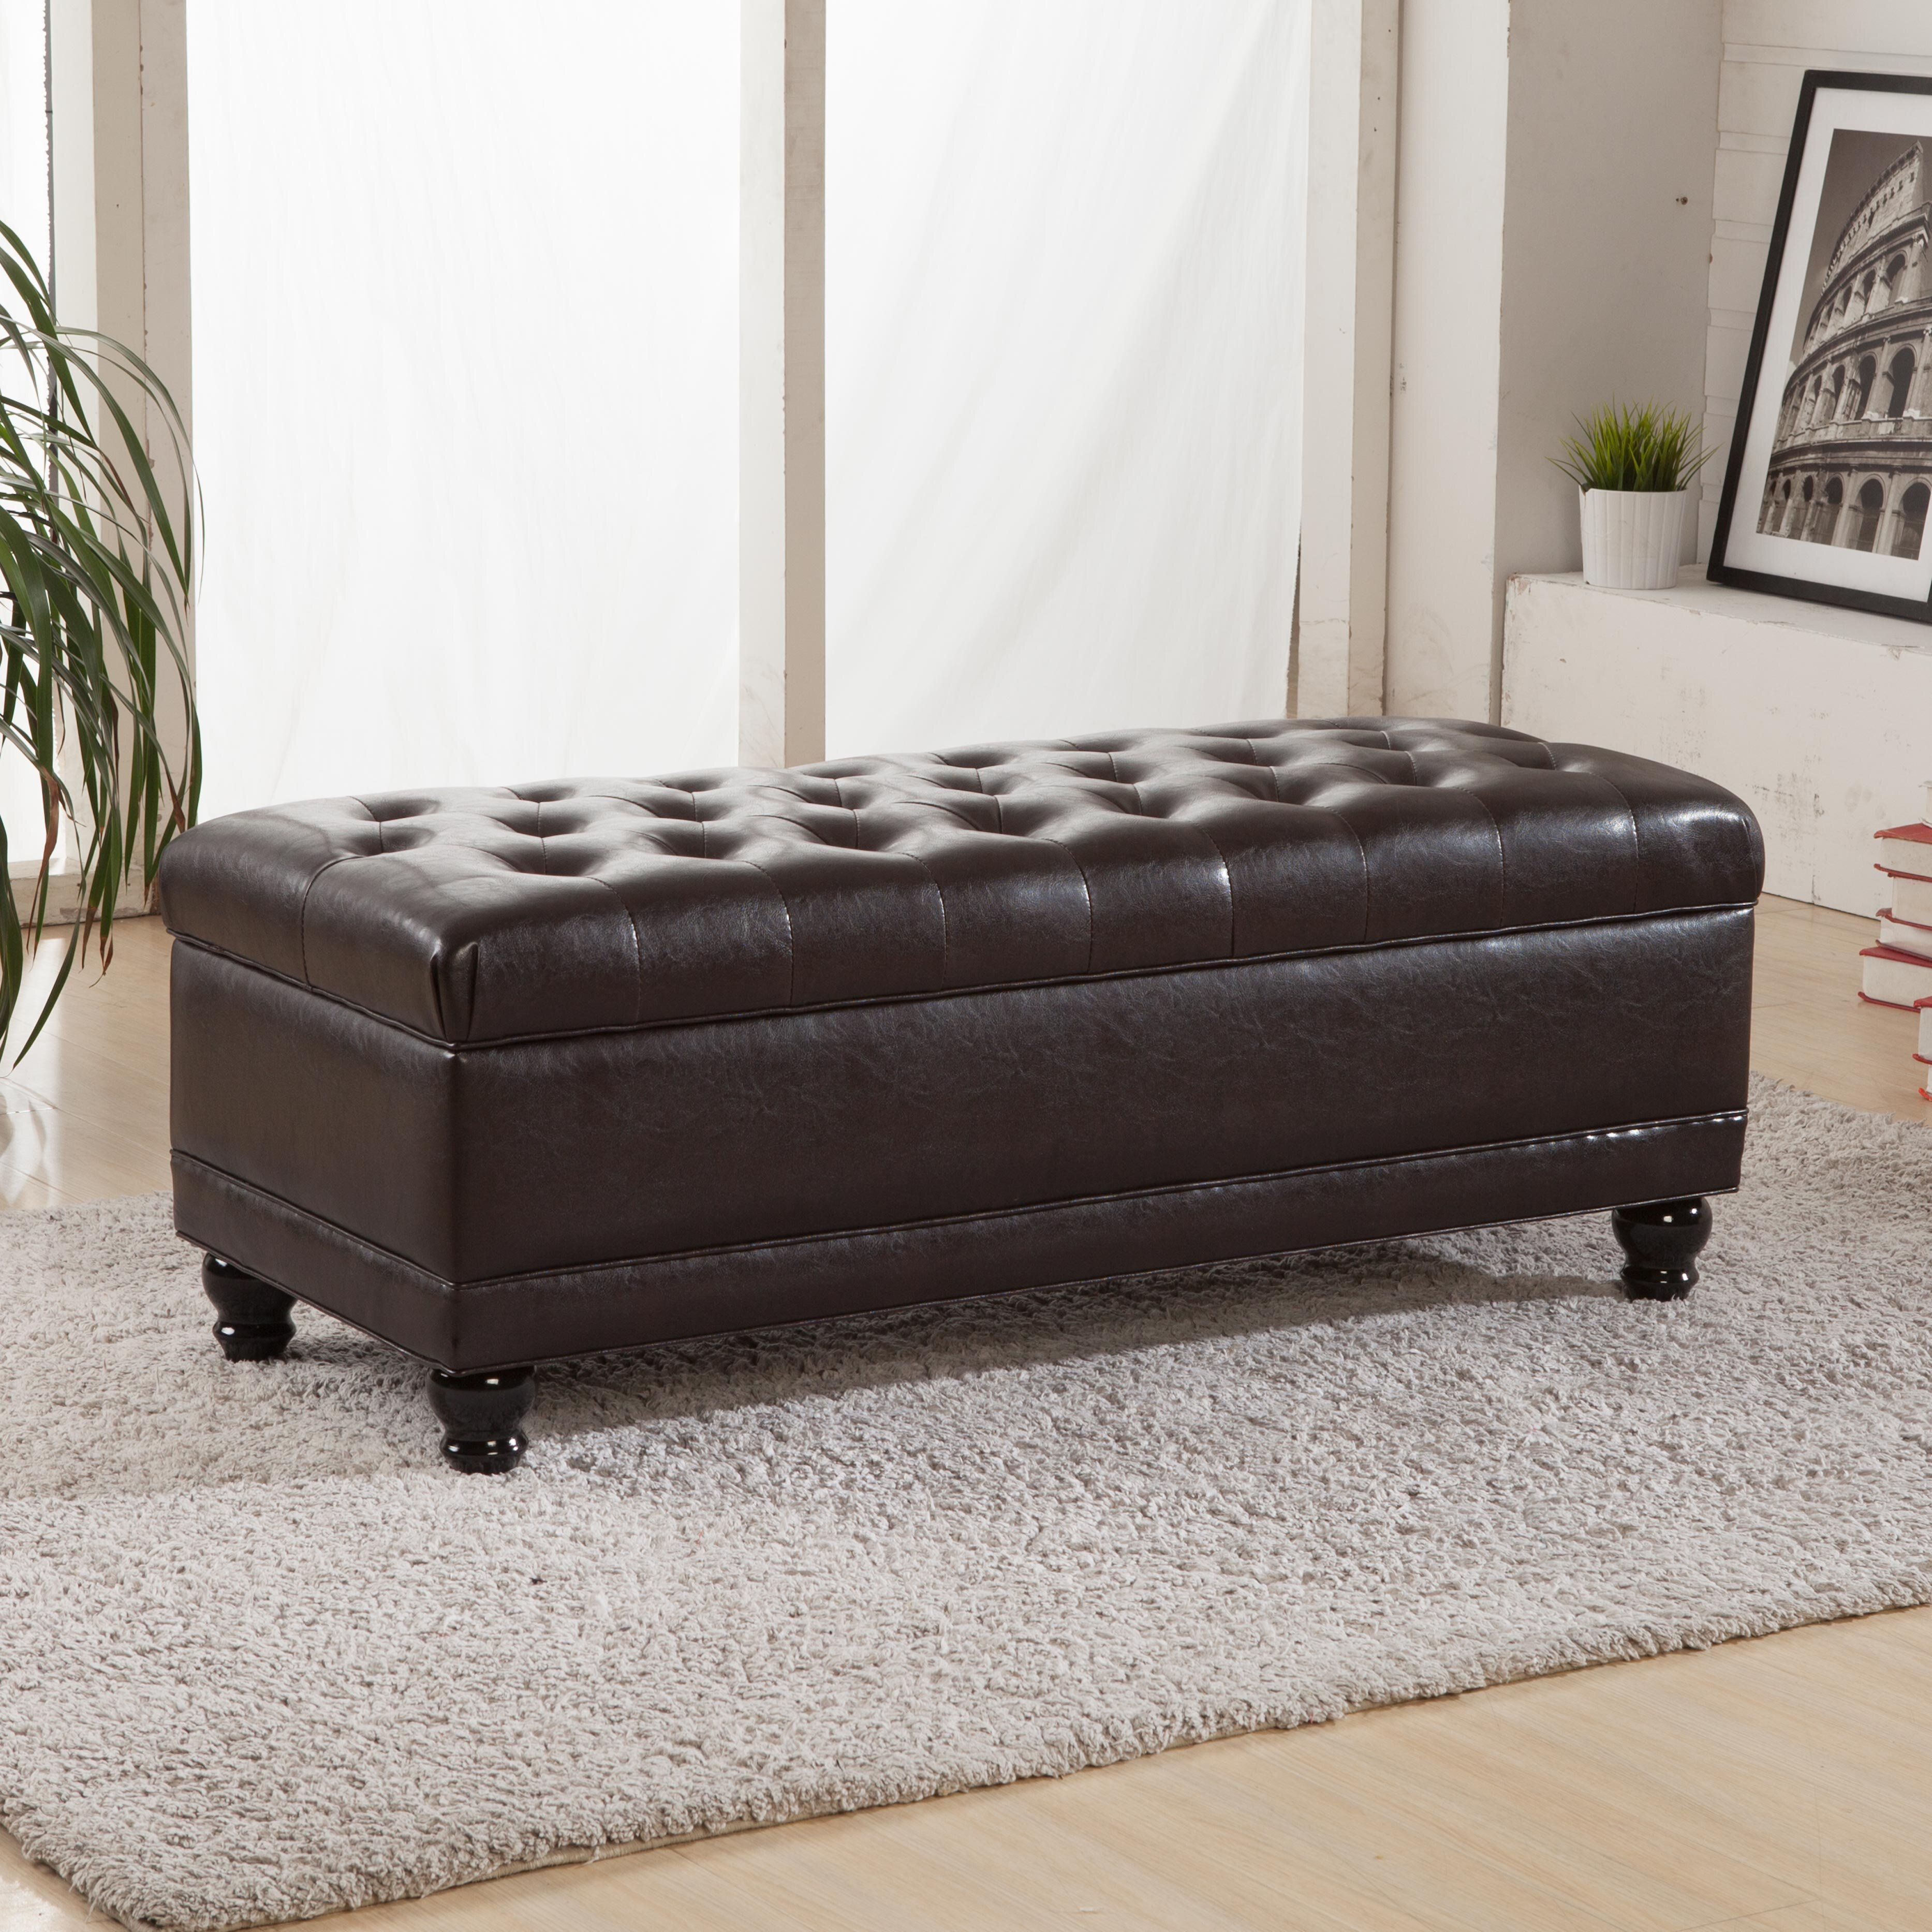 Bellasario Collection Luxury Comfort Upholstered Storage Bench & Reviews -